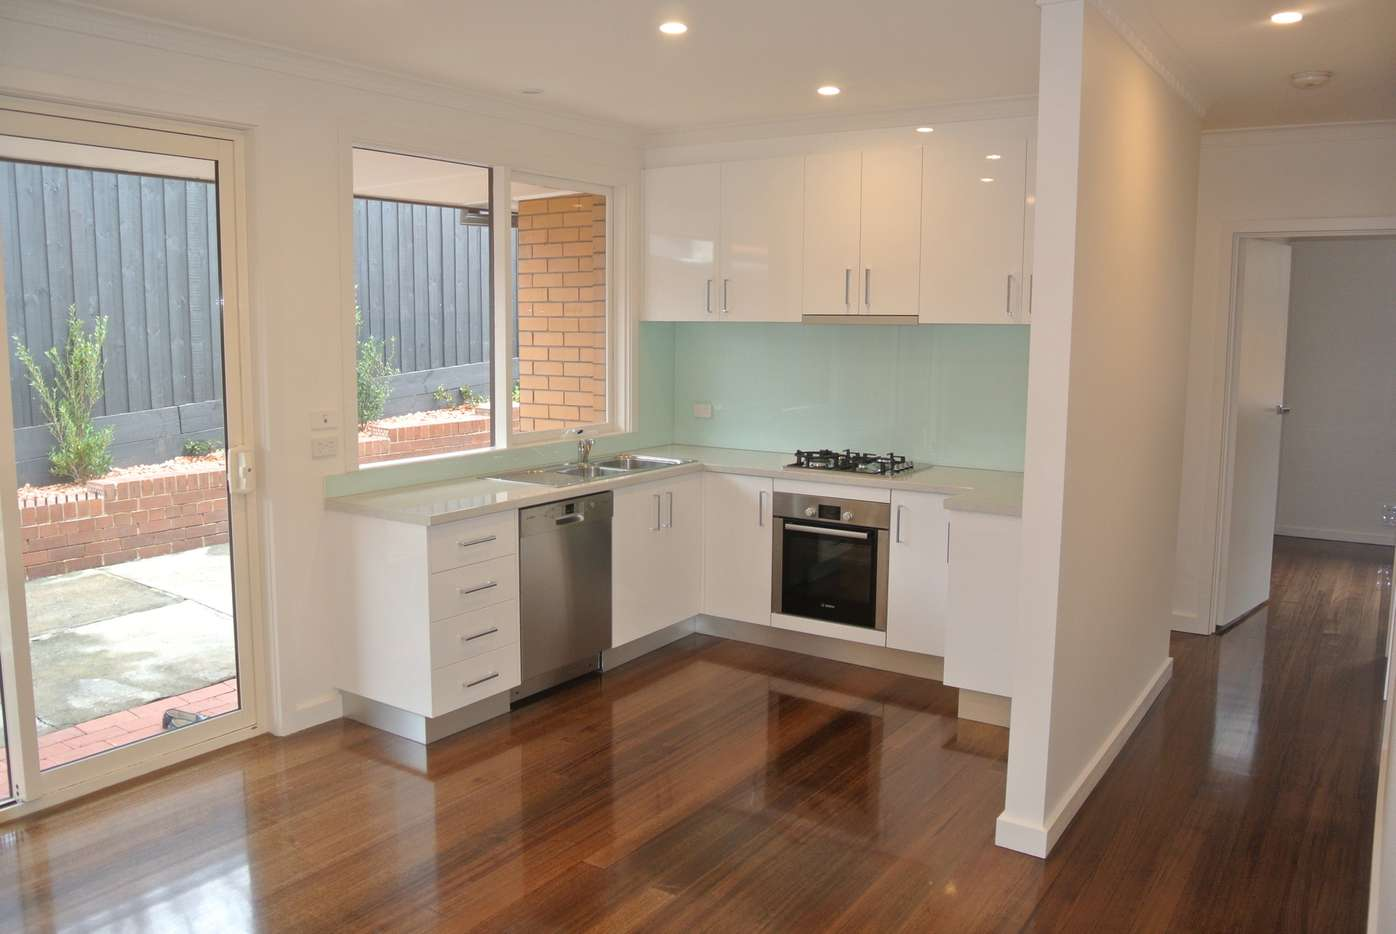 Main view of Homely unit listing, 2/28-30 Orange Grove, Camberwell, VIC 3124